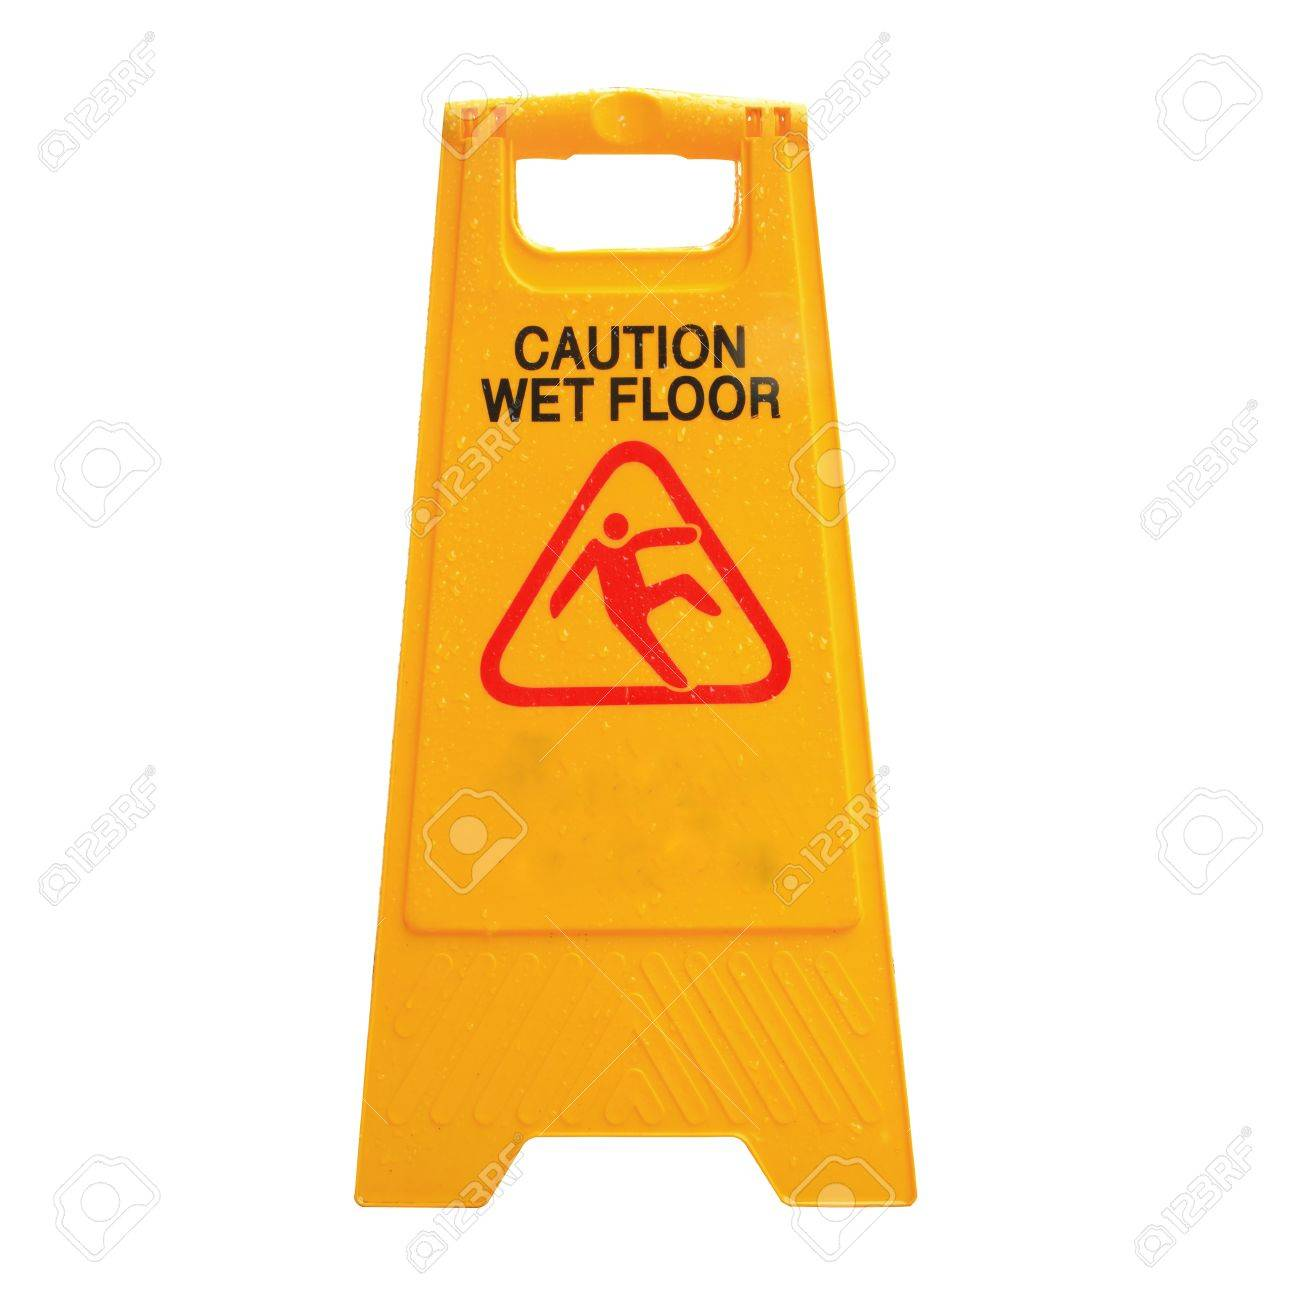 Sign advising caution on wet floor isolated on white Stock Photo - 17947548